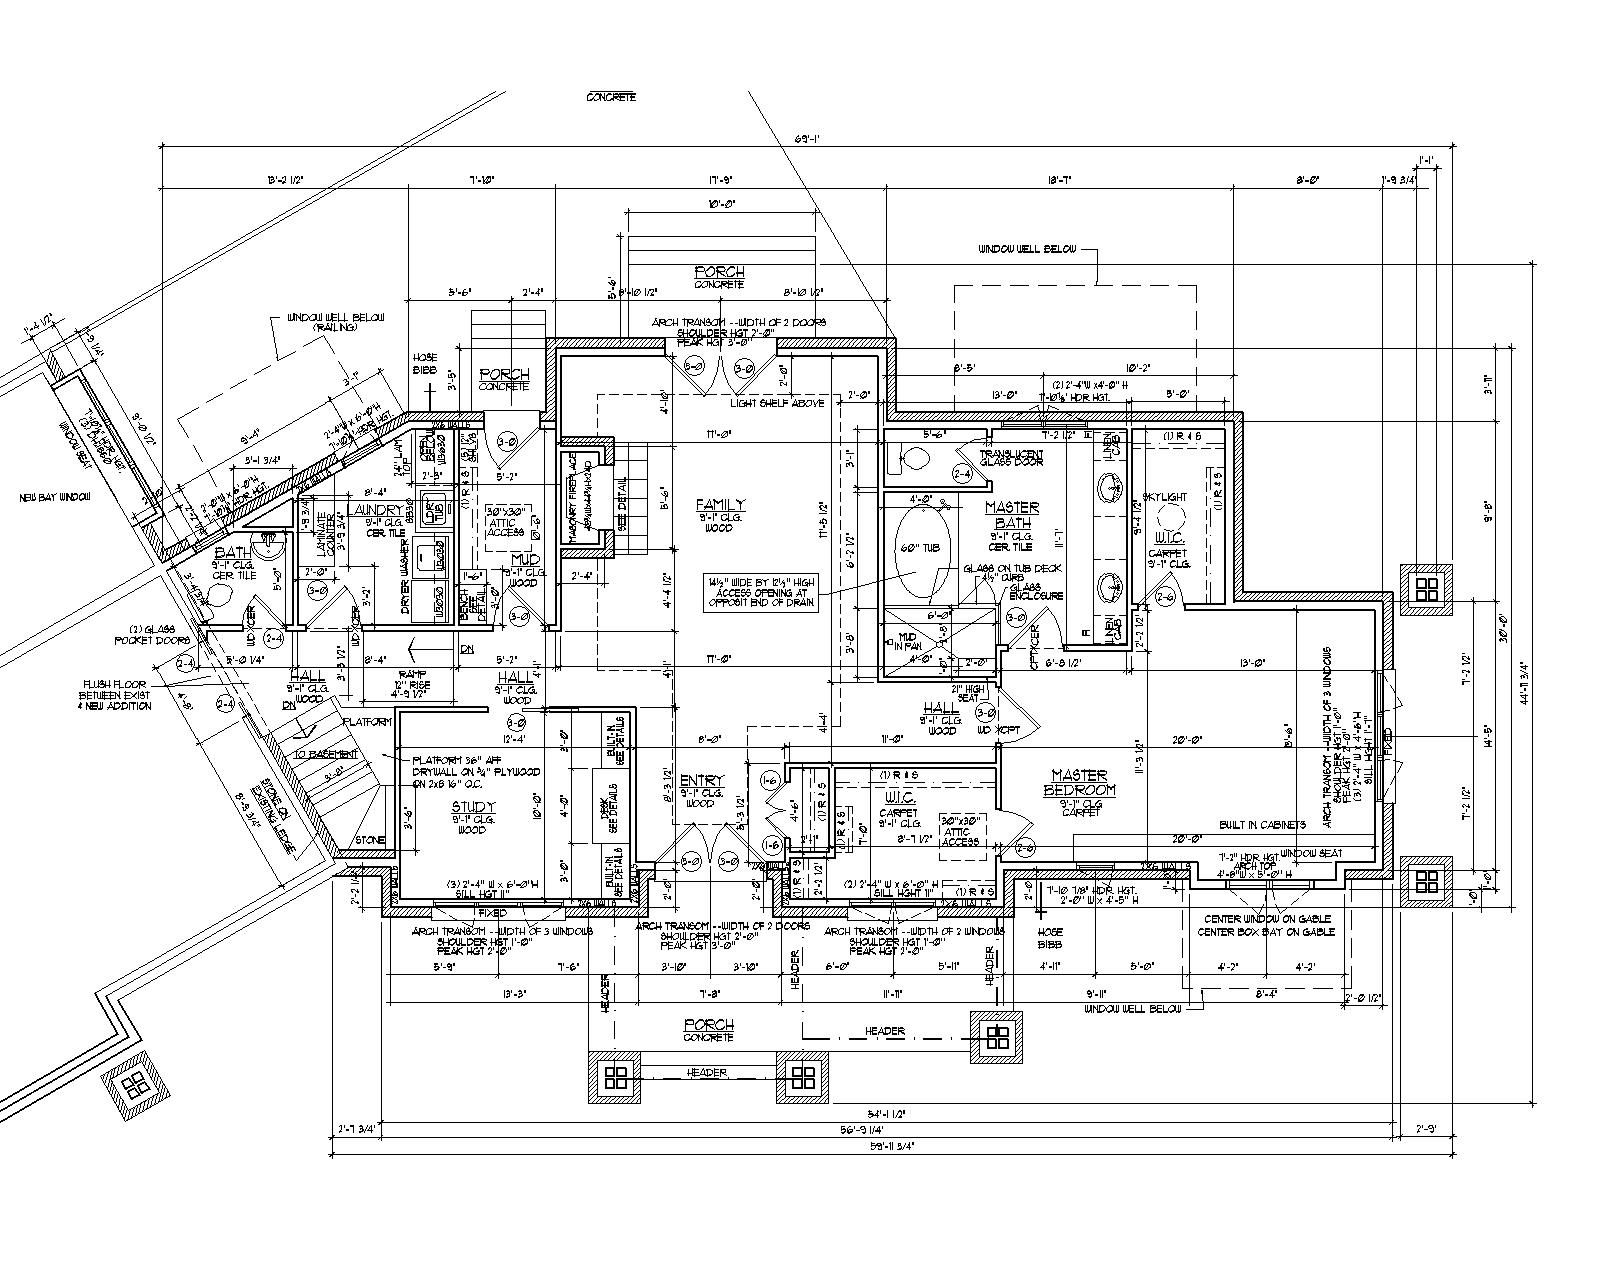 2d autocad house plans residential building drawings cad for House drawing plan layout